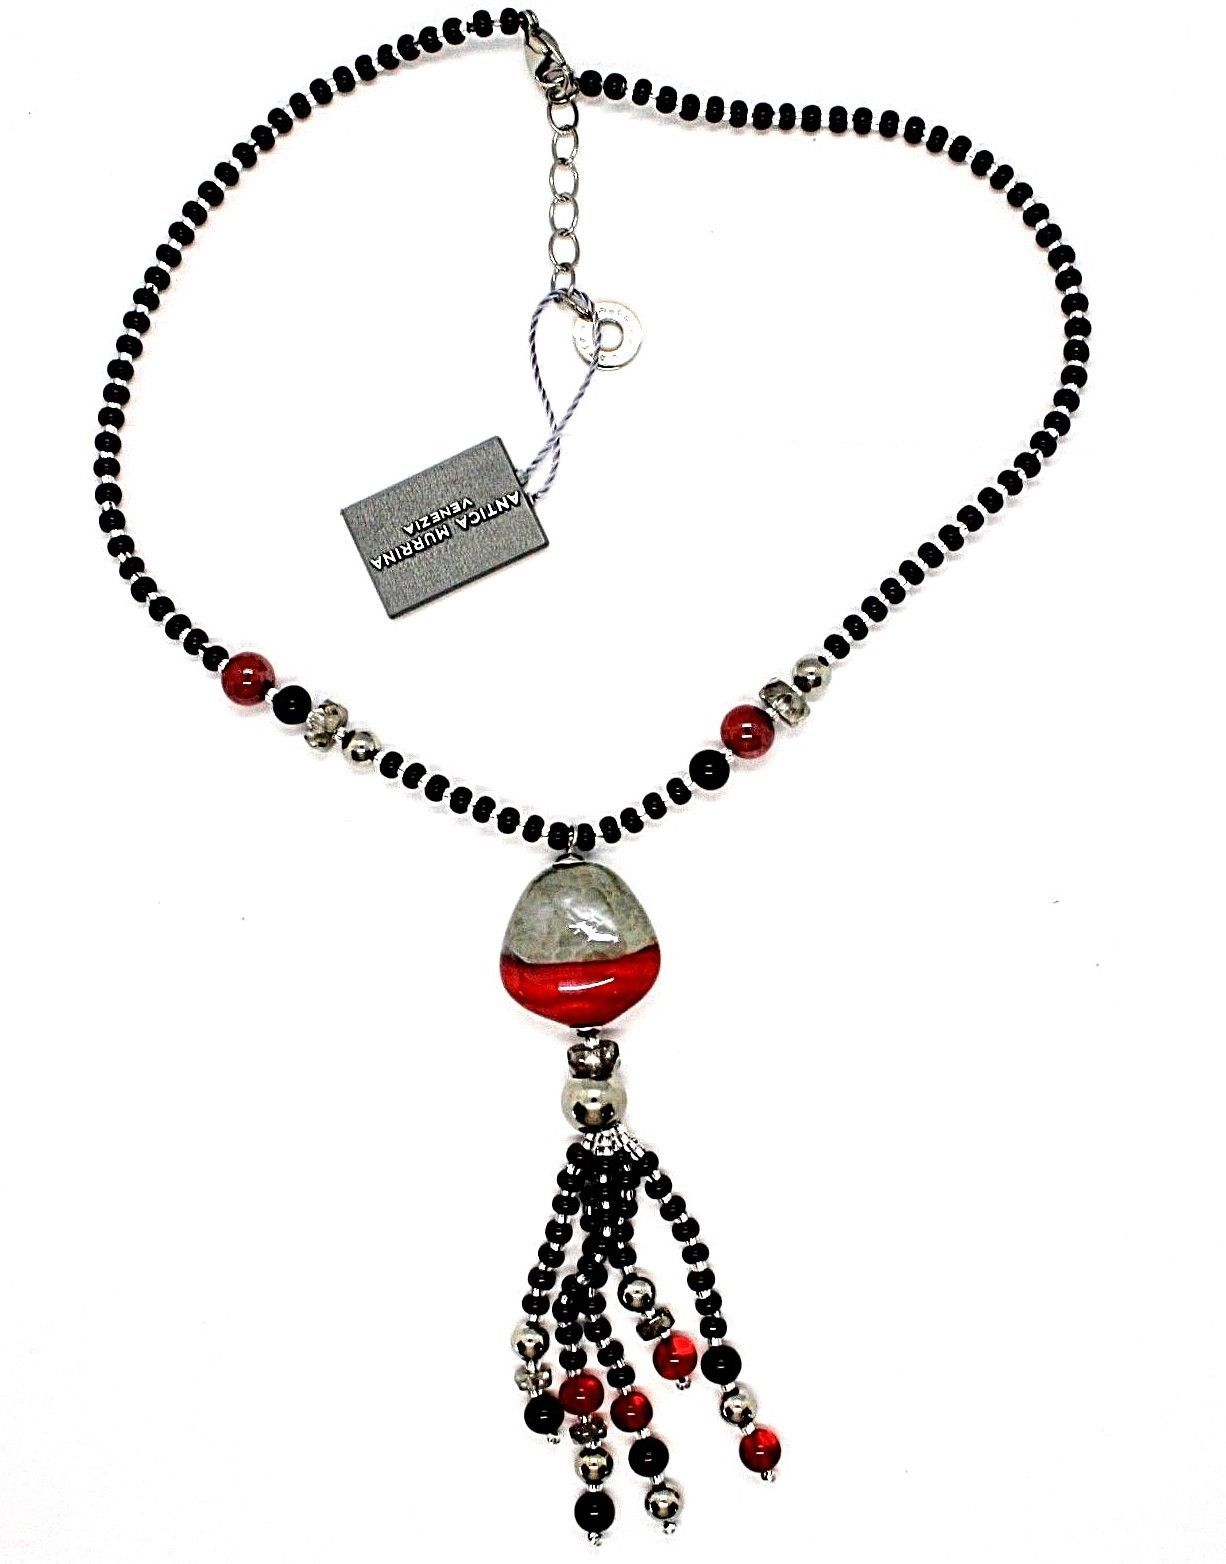 NECKLACE ANTICA MURRINA VENEZIA WITH MURANO GLASS RED BLACK SILVER CO852A14